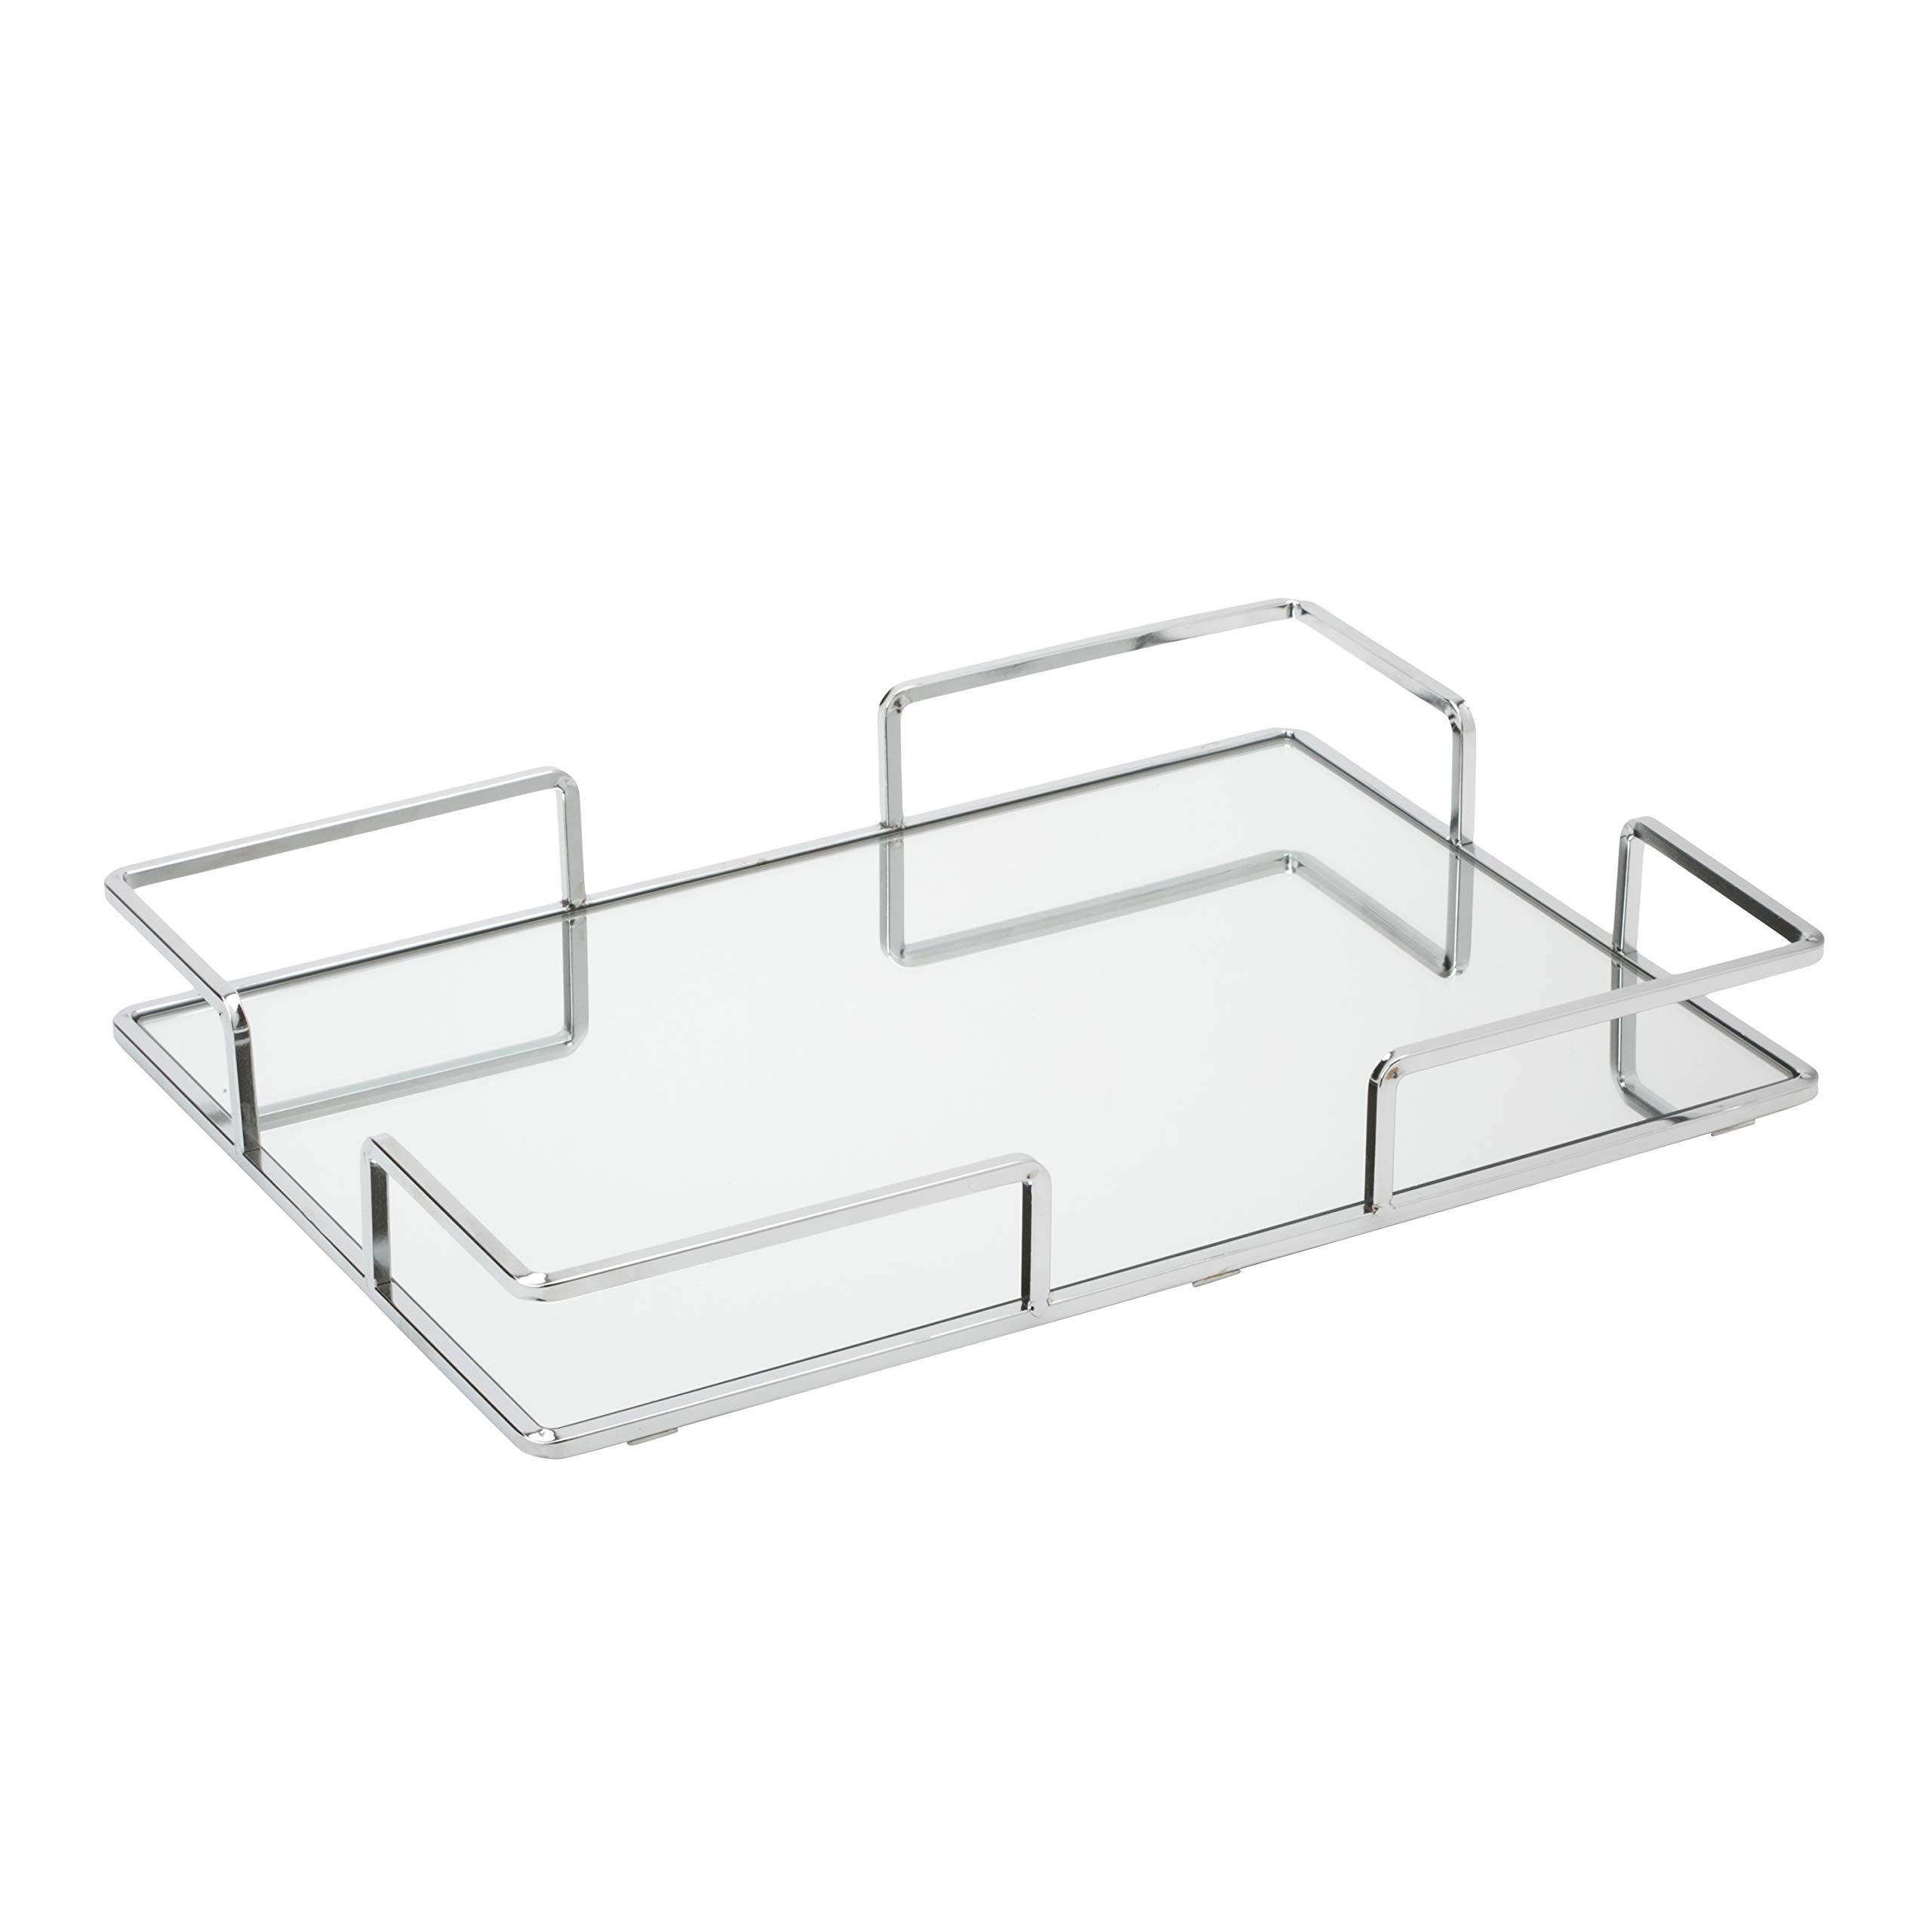 Home Details Vanity Tray, Chrome by Home Details